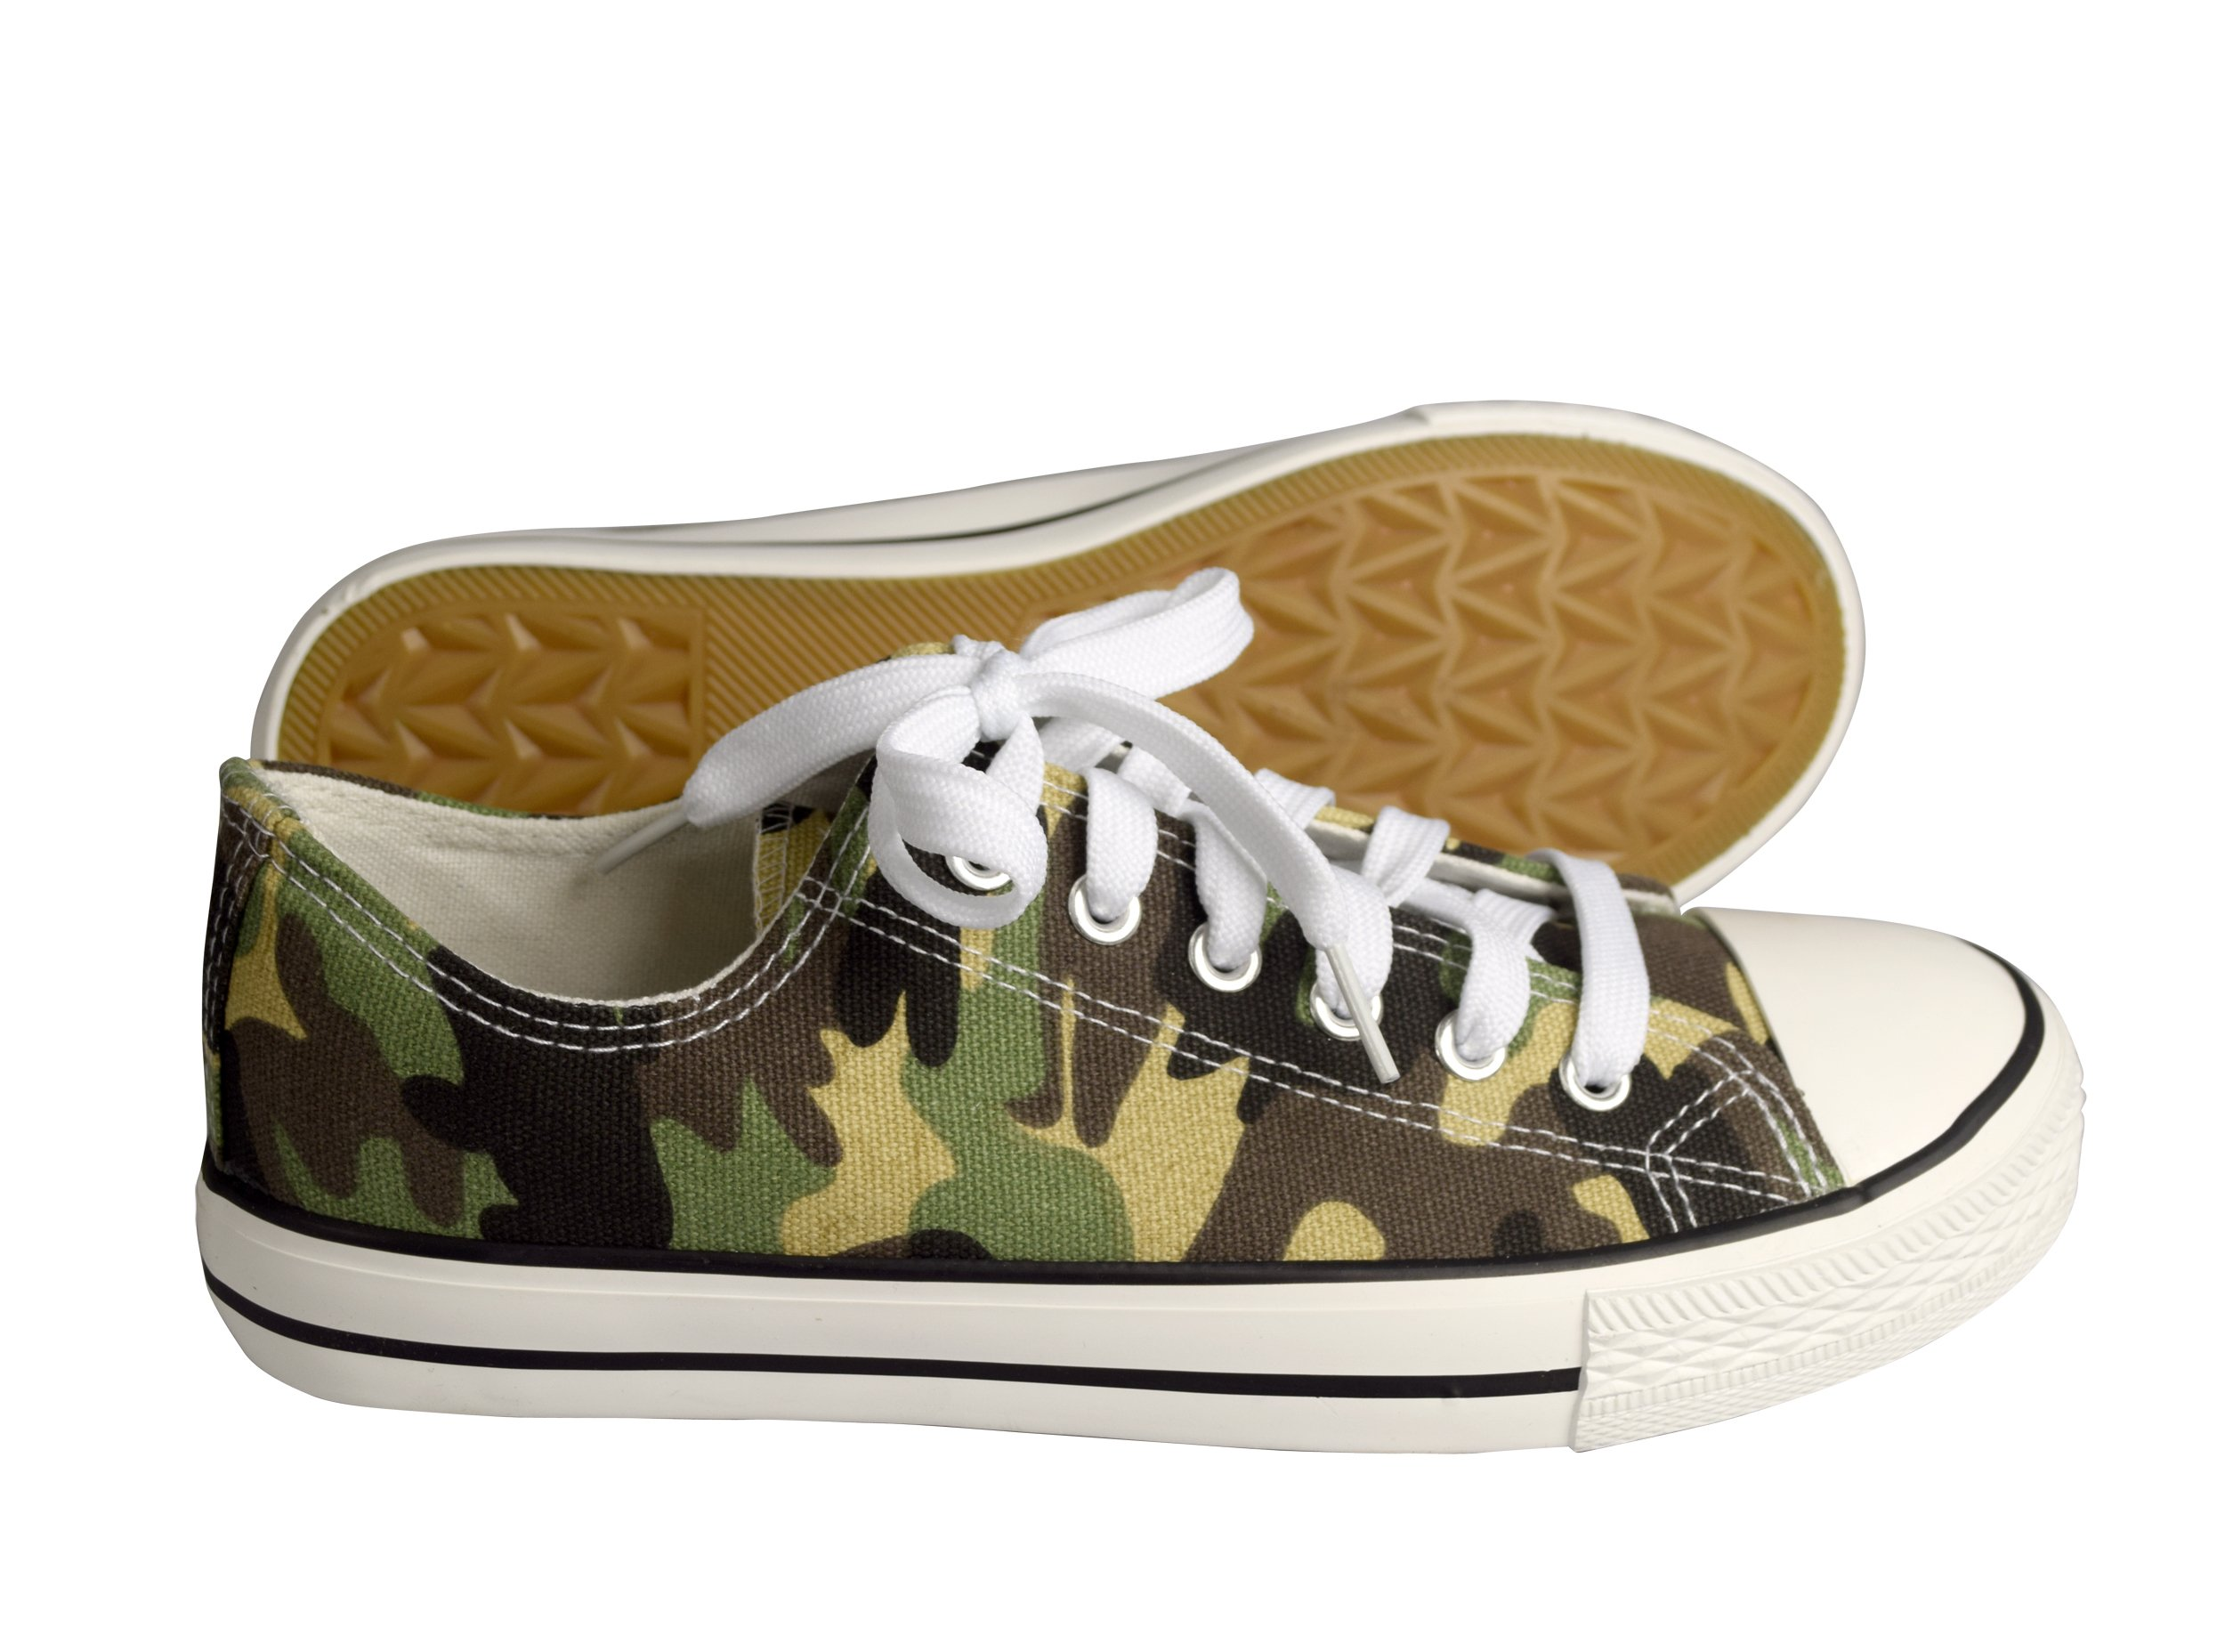 Peach Couture Casual Sneakers Low Top Tennis Shoes (5 B(M) US, Camo)